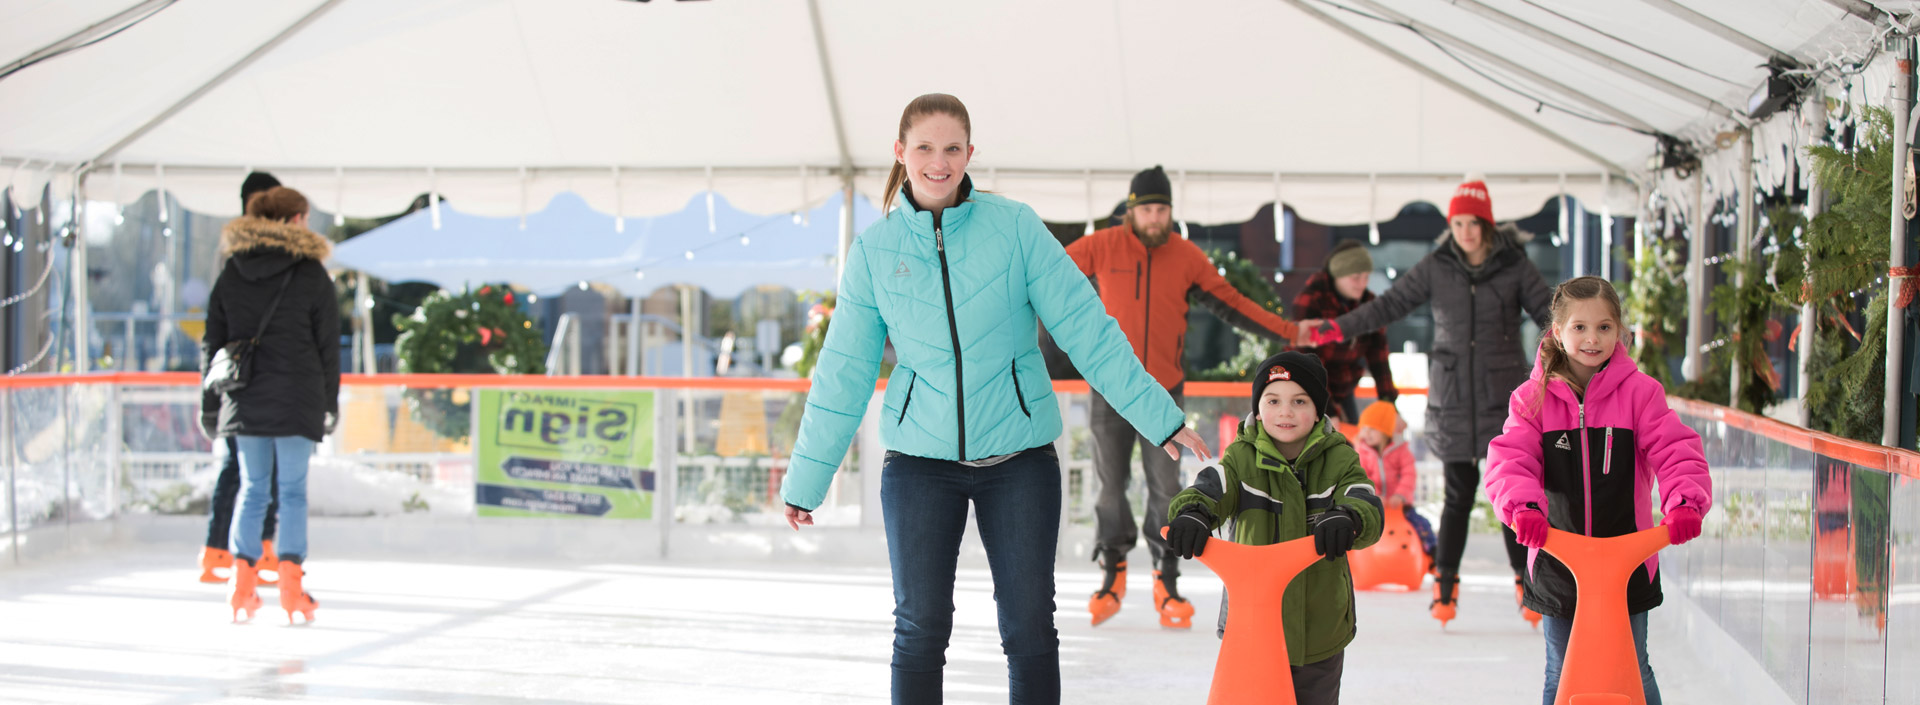 Image of family ice skating at Winter Village